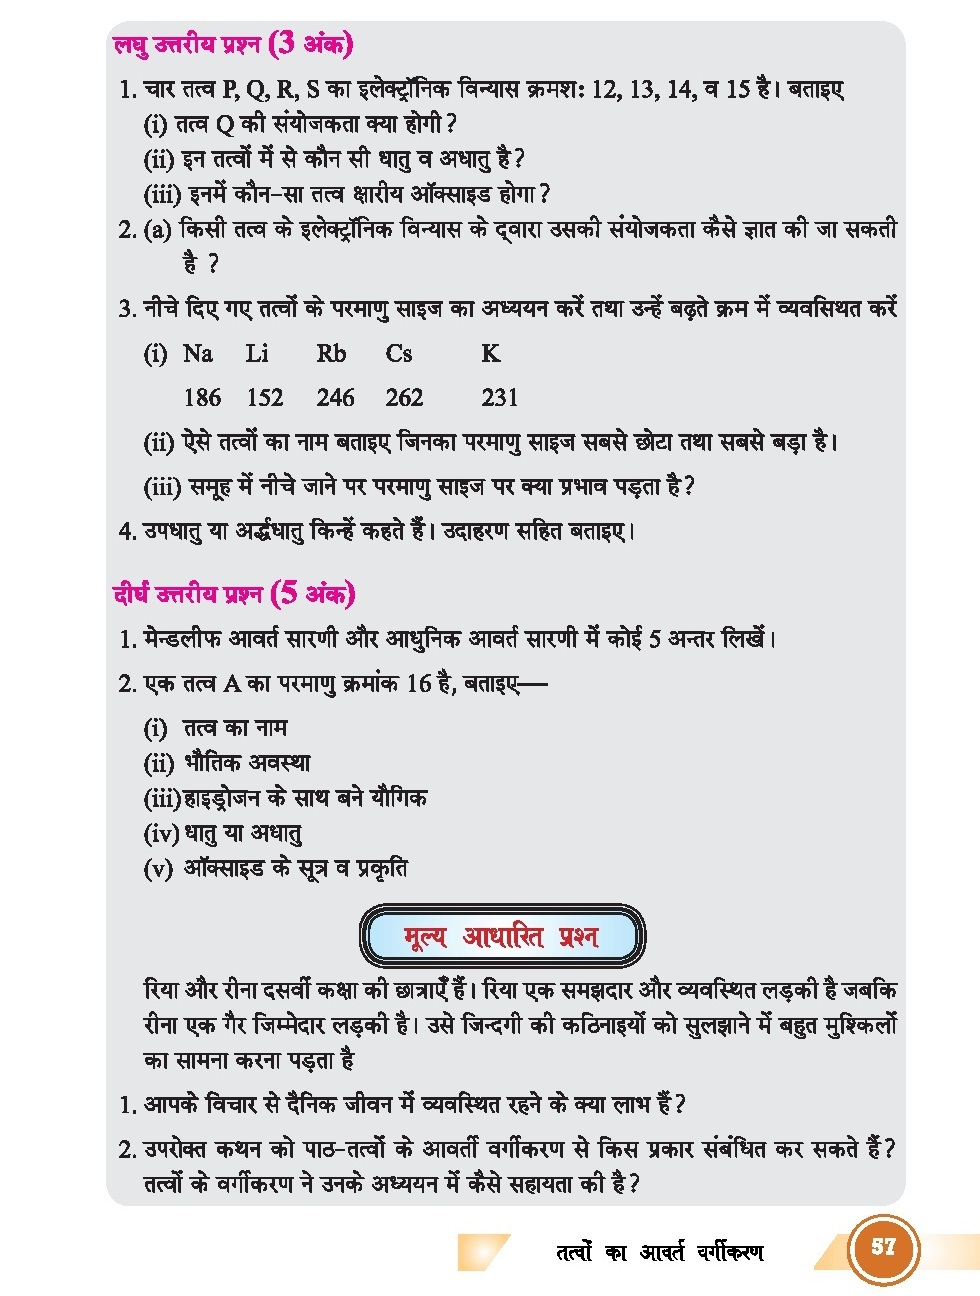 NCERT Solutions for Class 10 Science Chapter 5 modeducation